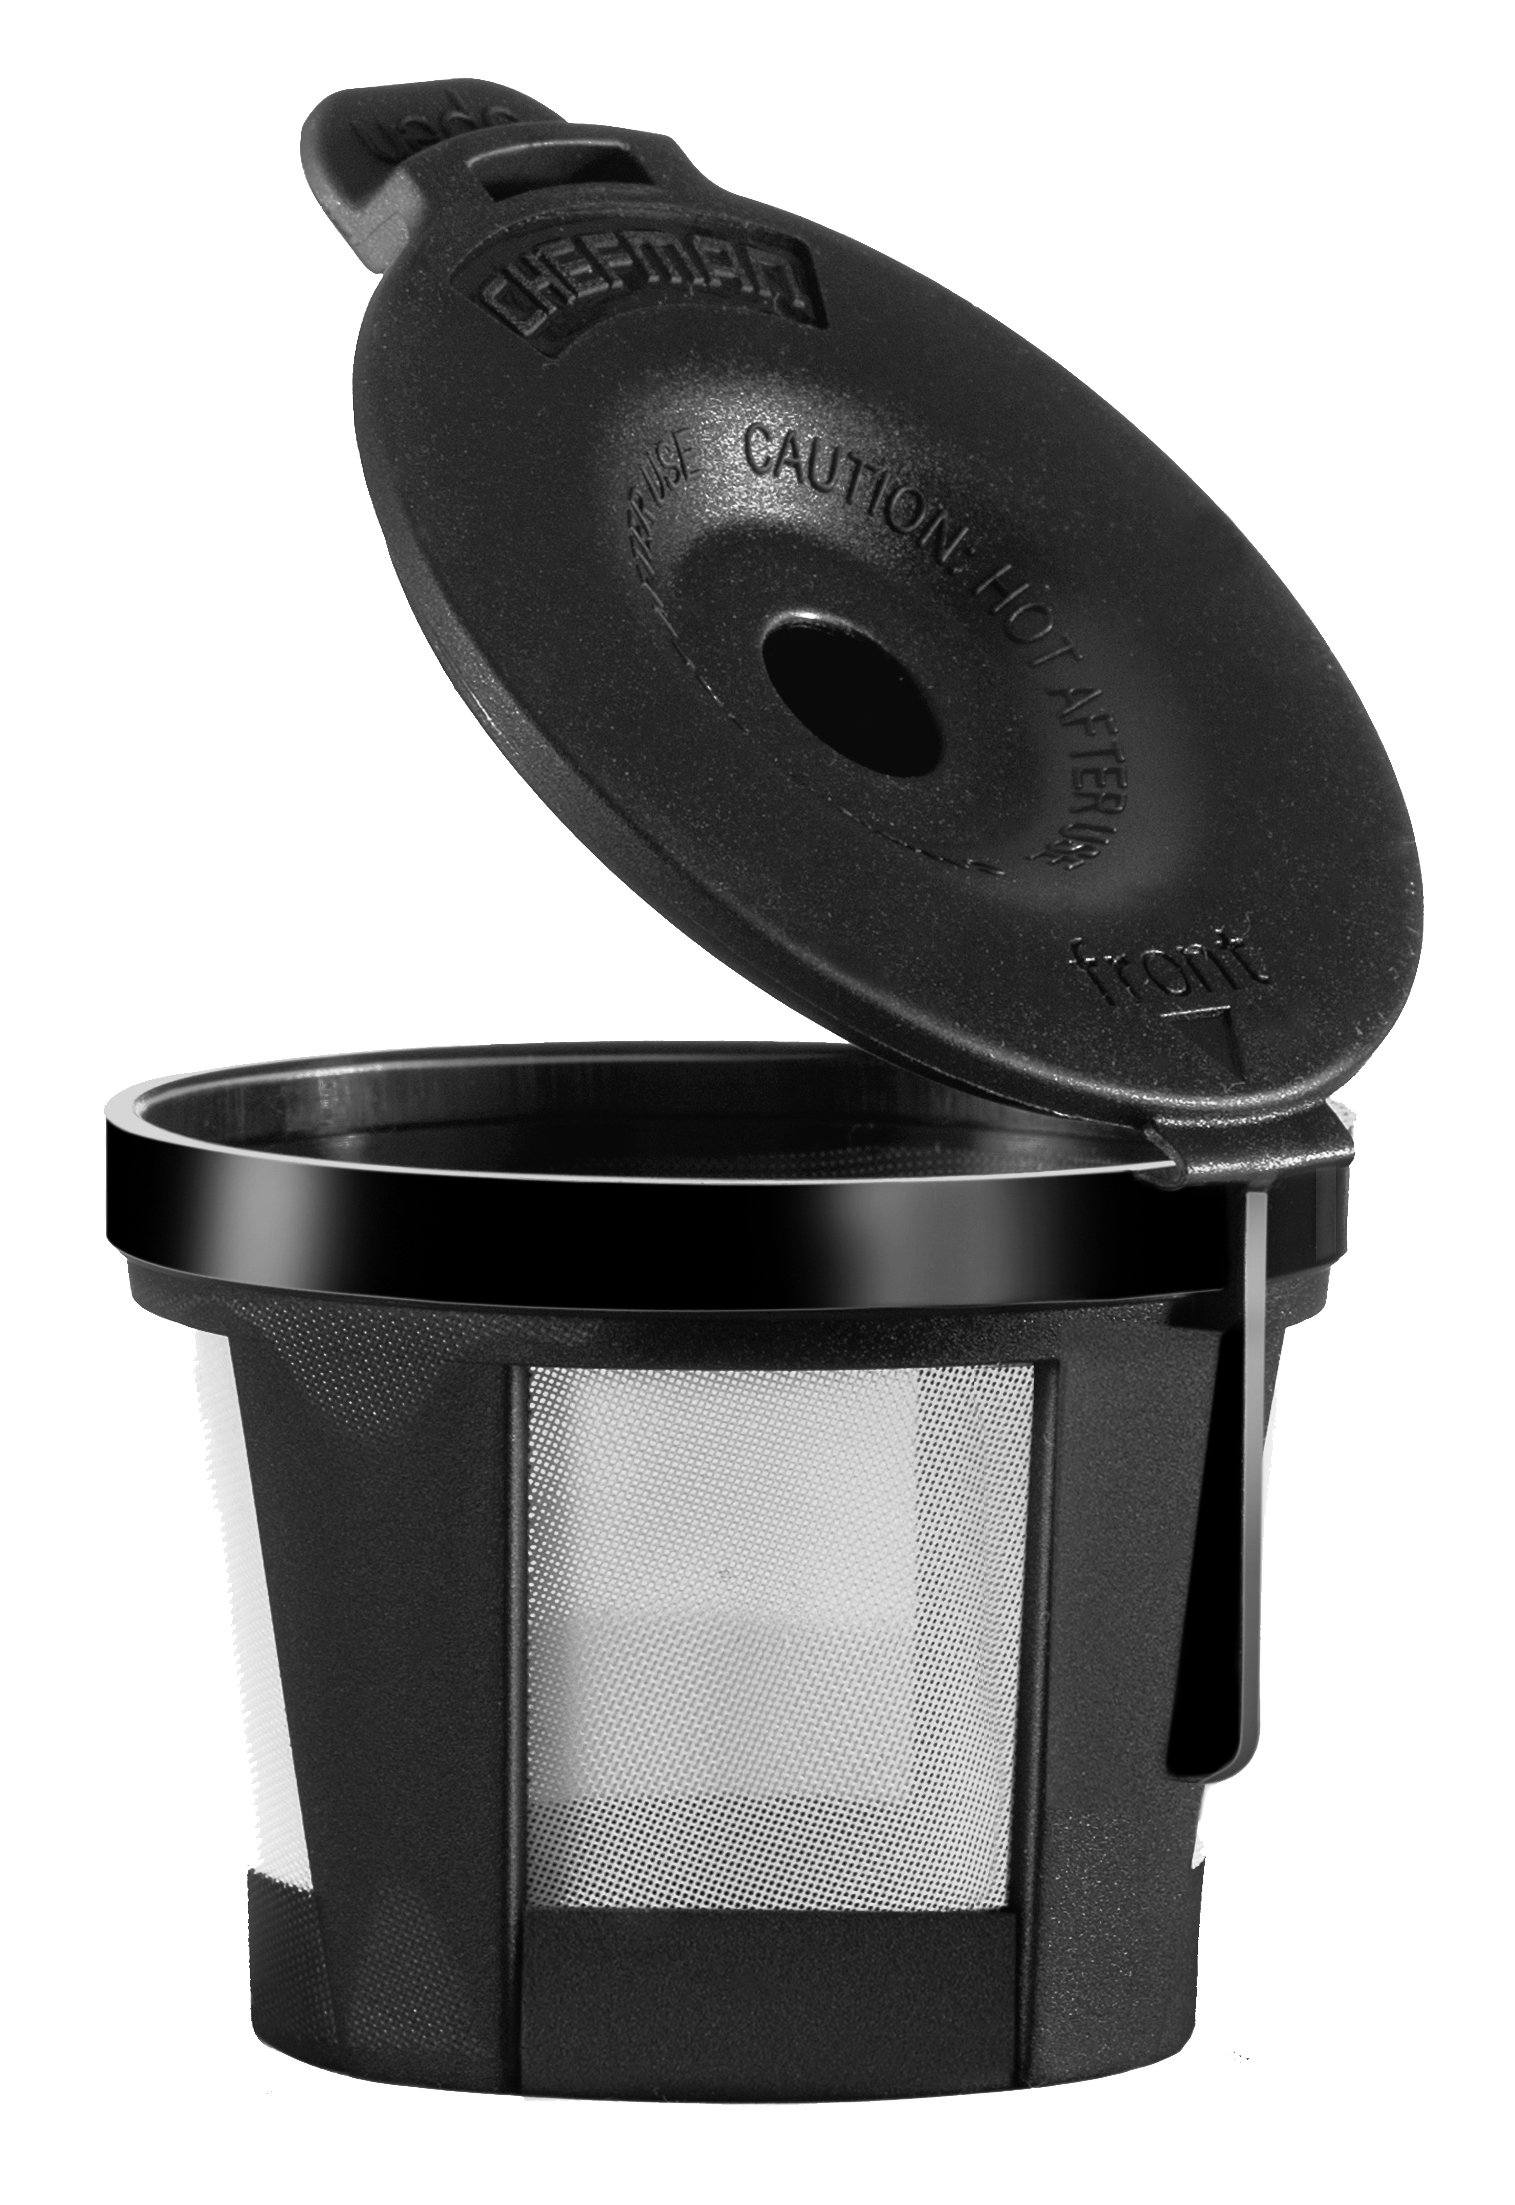 Chefman Reusable Coffee Filter for Single Brew K-Cup Coffee Makers Fits All RJ14-SKG Models, Stainless Steel & Mesh, Compatible with Coffee Grounds or Tea, Coffee Pod Replacement